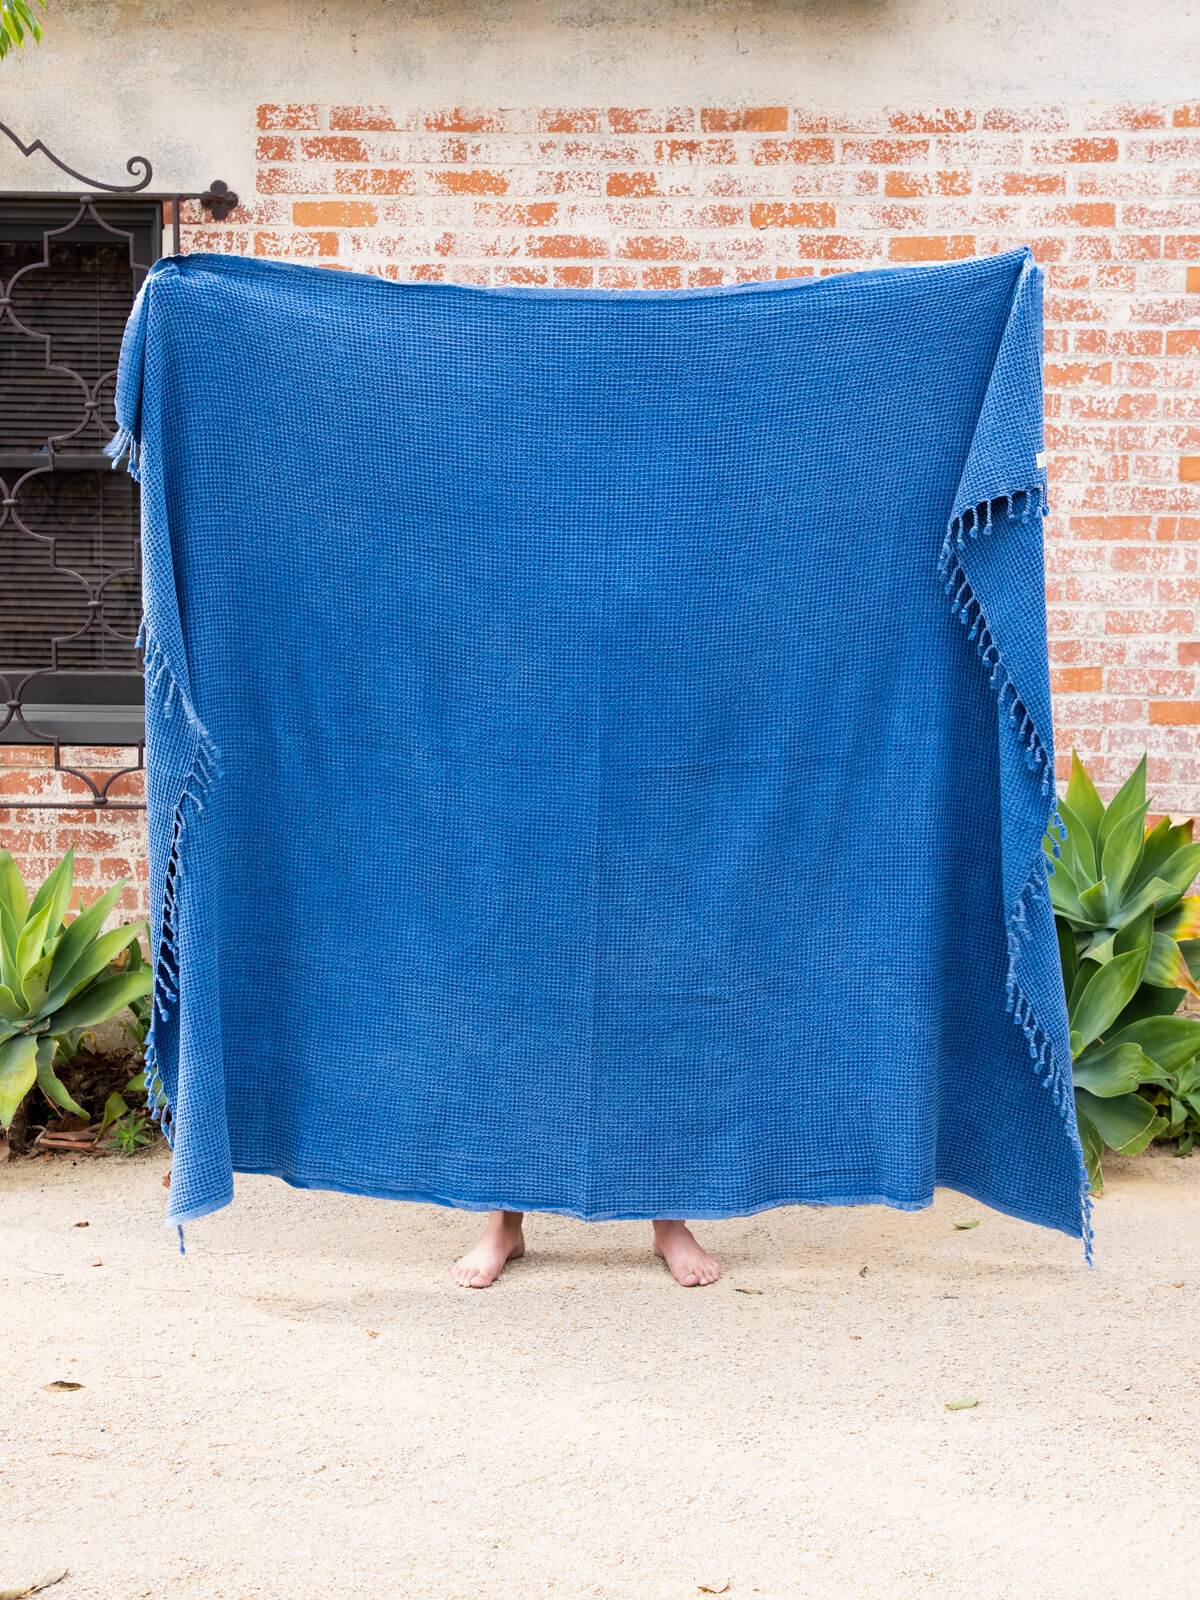 The Waffle Blanket in Blue